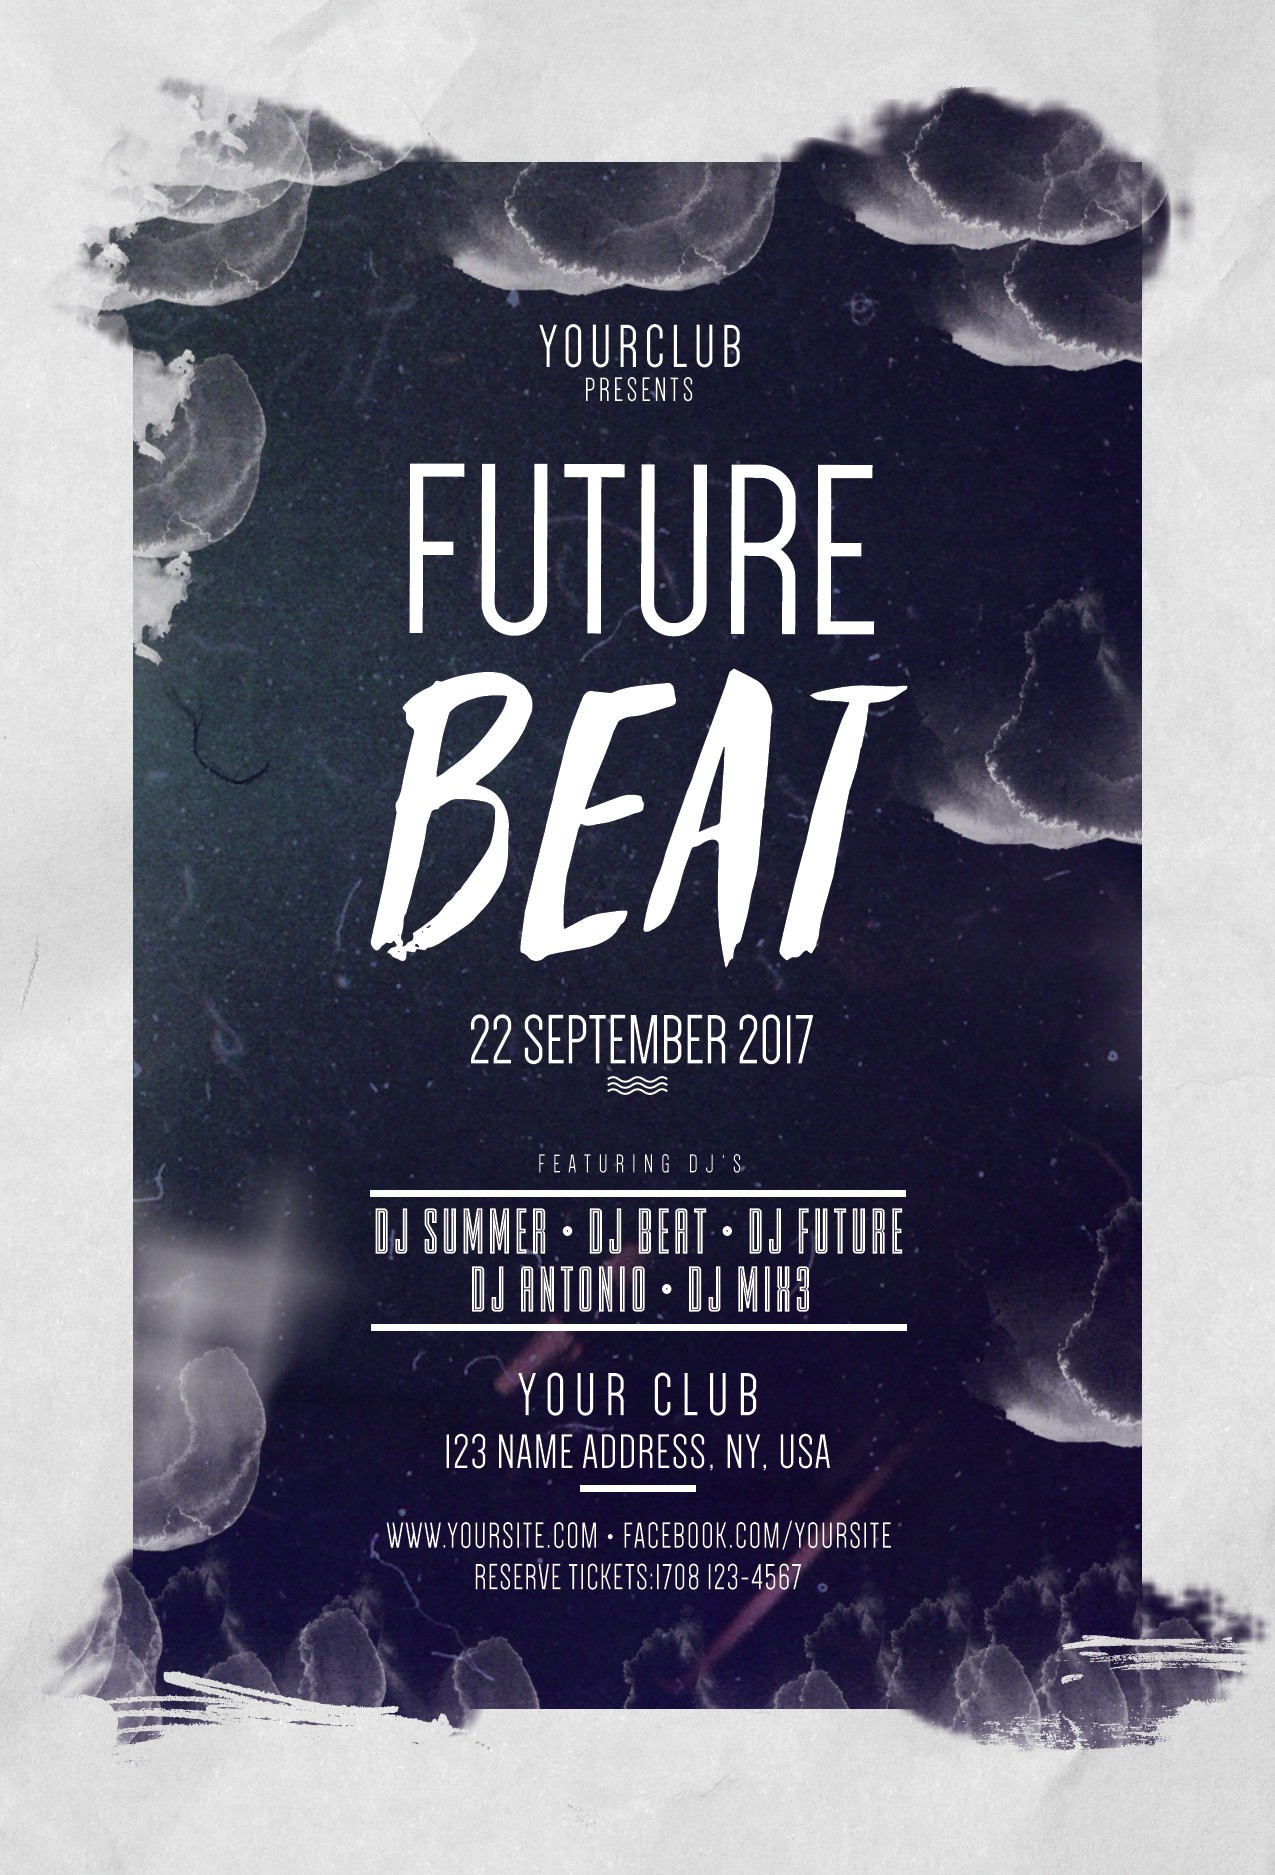 x mas party psd flyer net future beat bie psd flyers templates